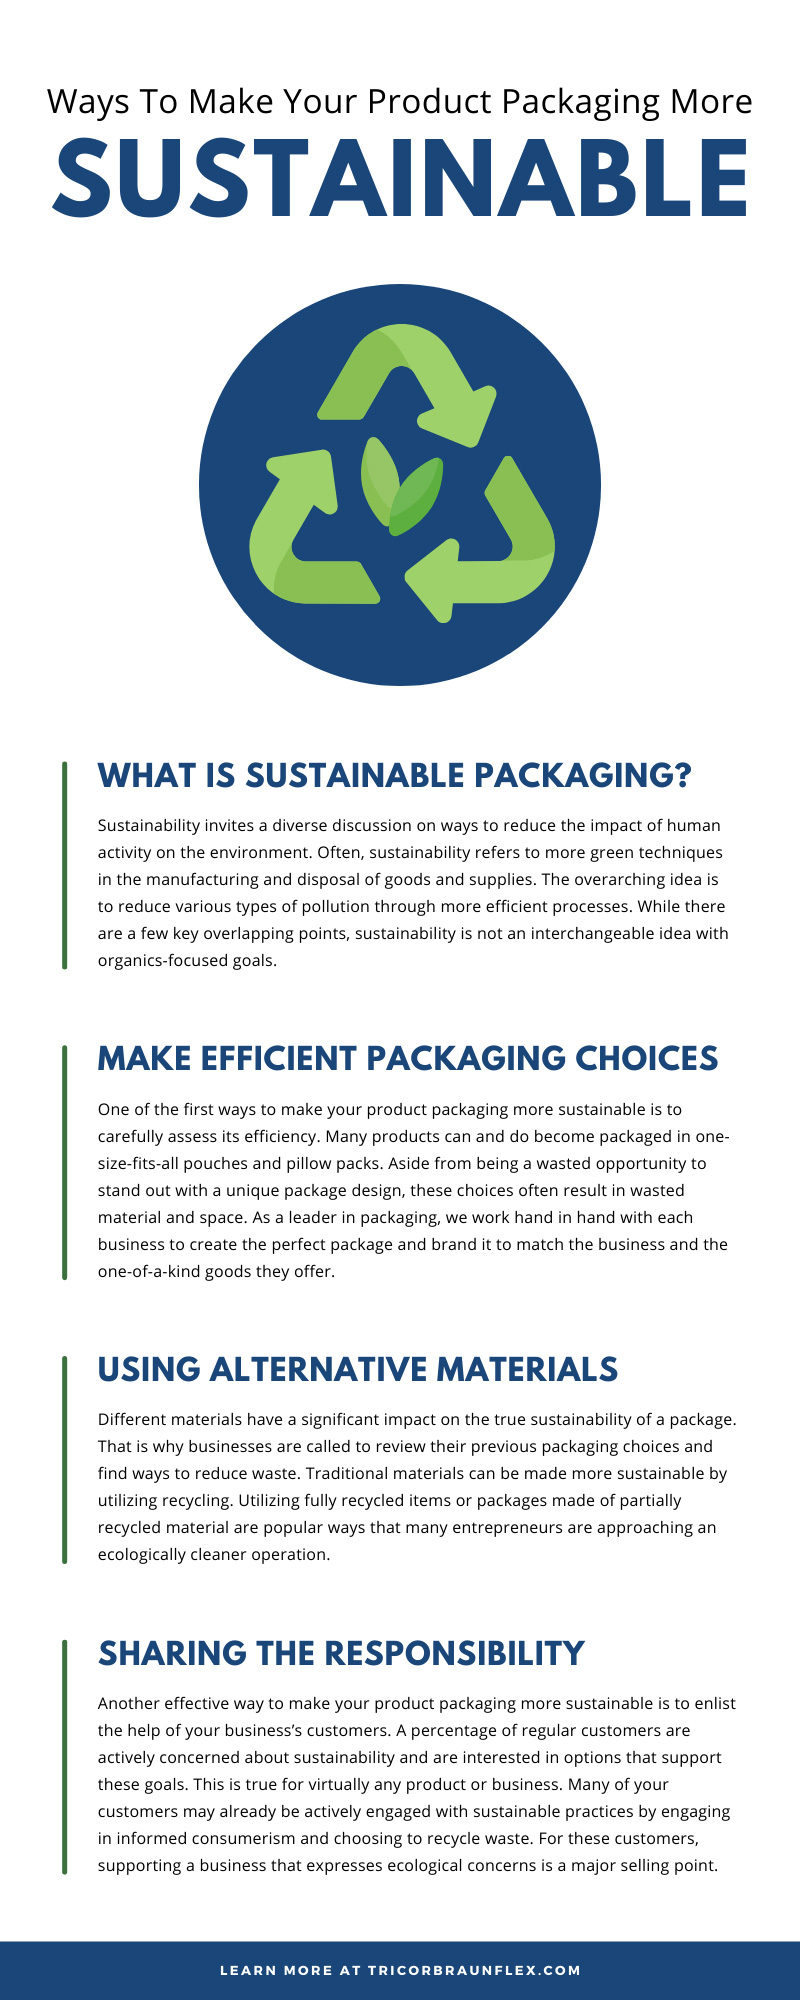 Ways To Make Your Product Packaging More Sustainable